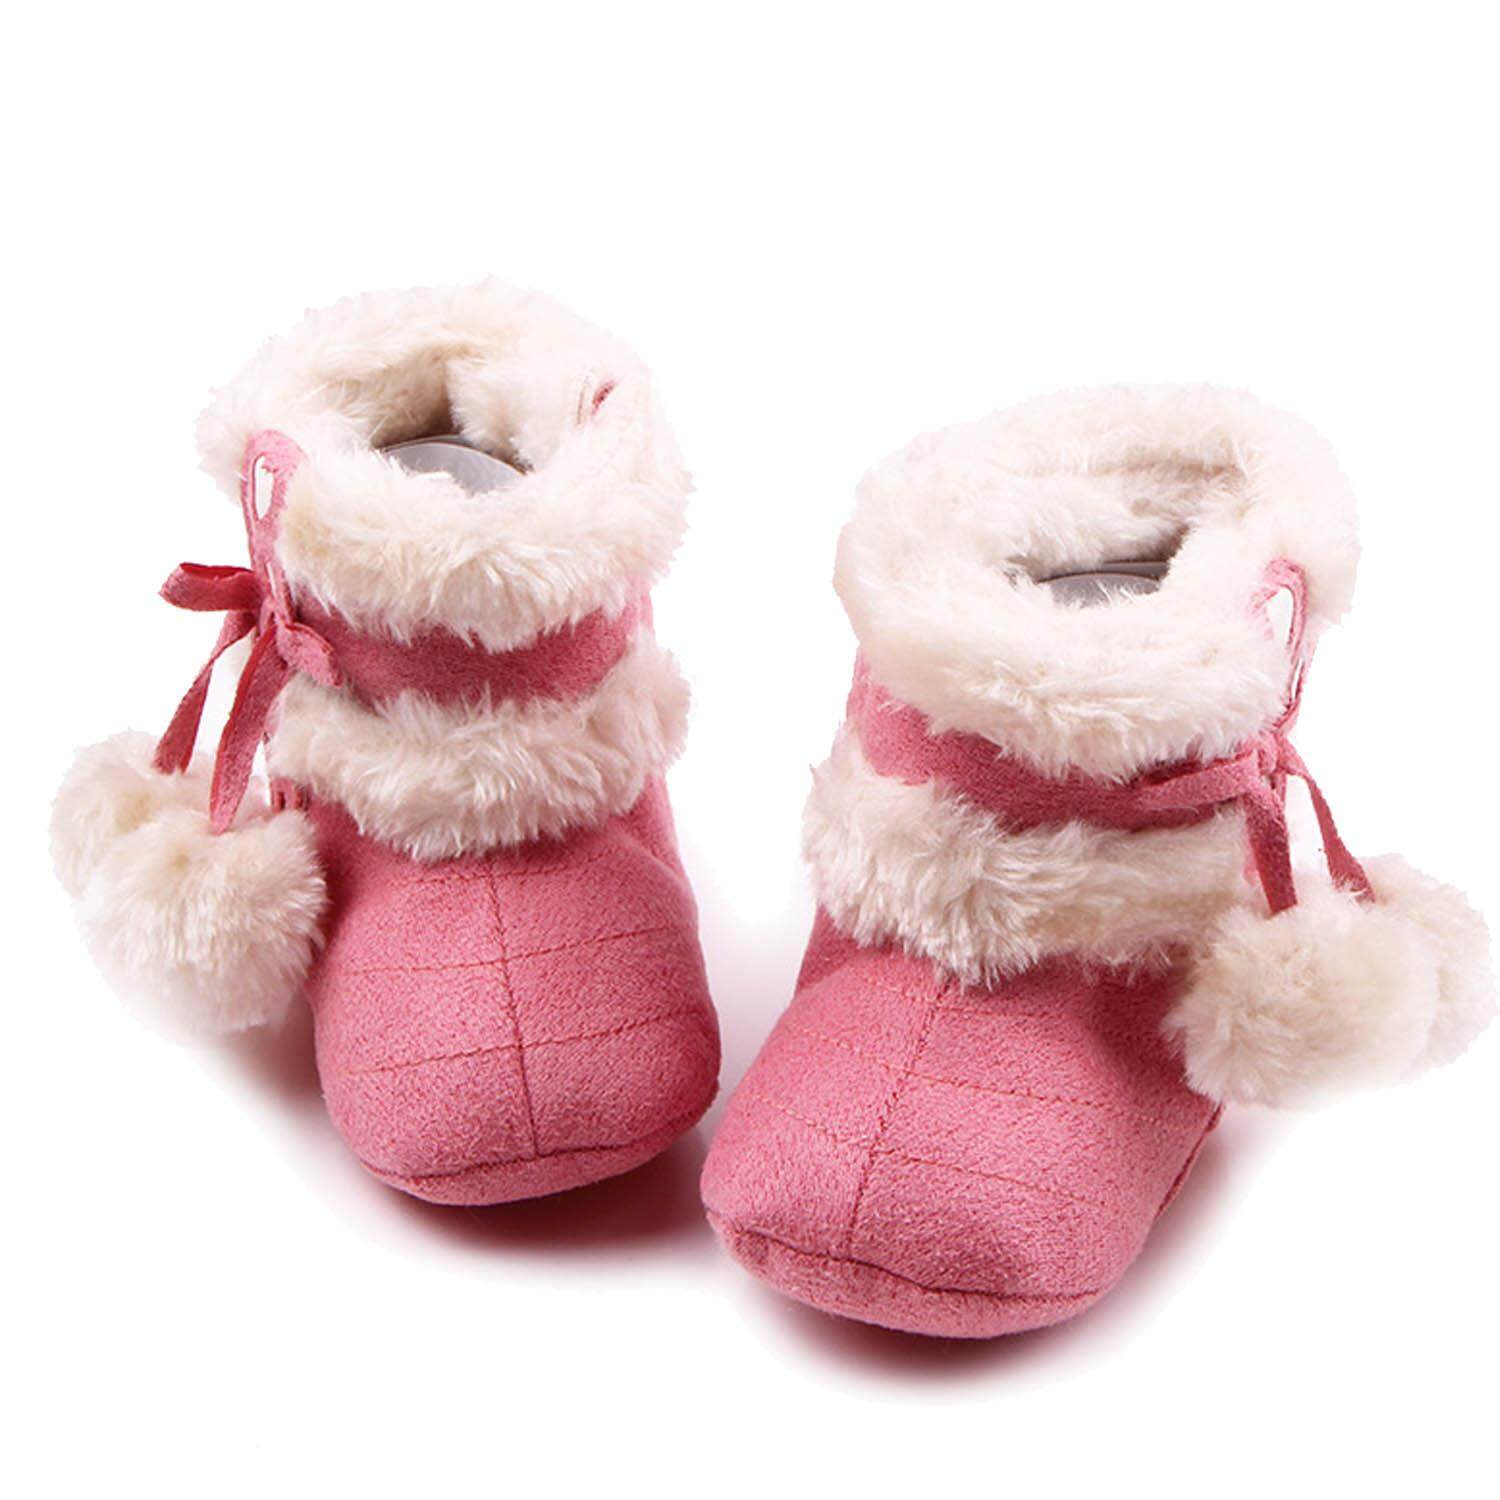 85f744073 Baby Girls - Boots - Buy Baby Girls - Boots at Best Price in ...